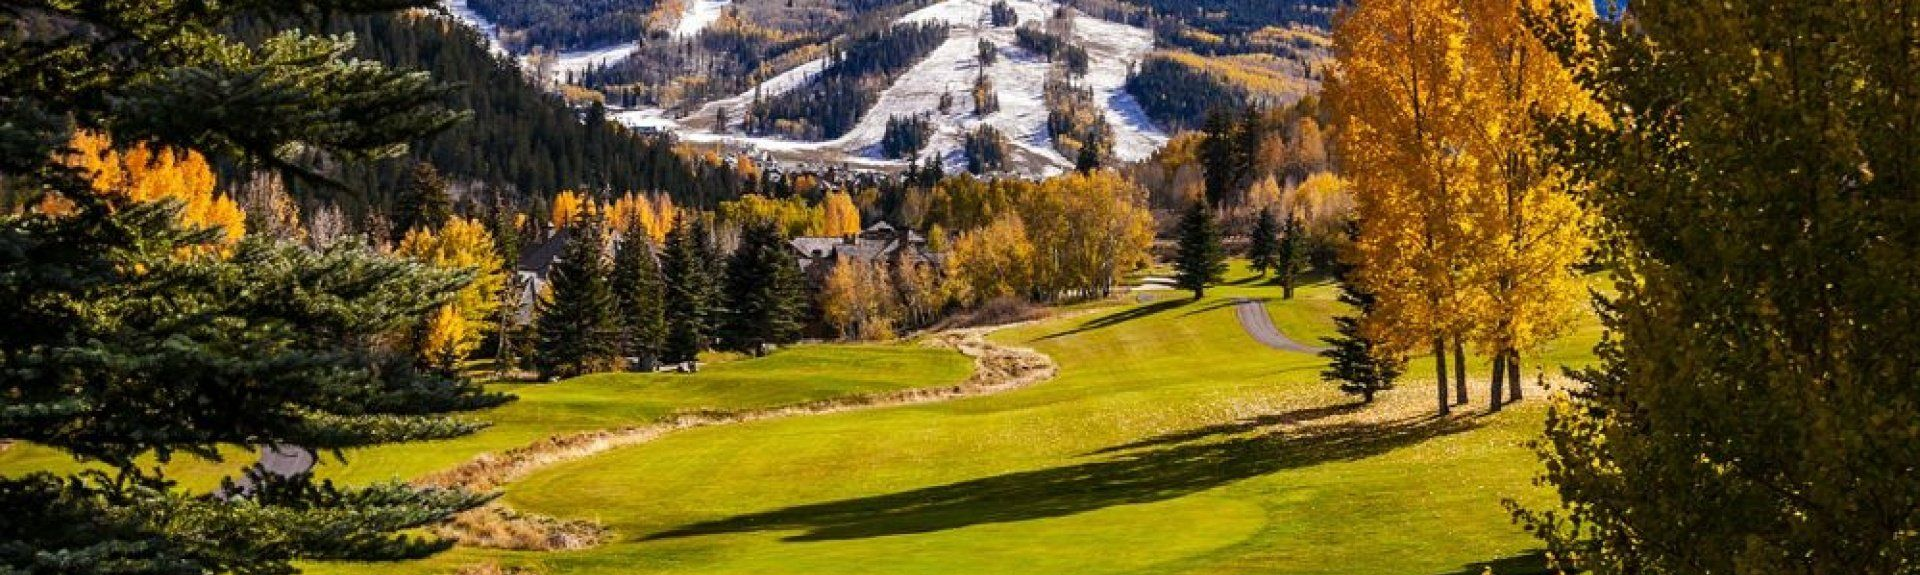 West Vail, Vail, Colorado, United States